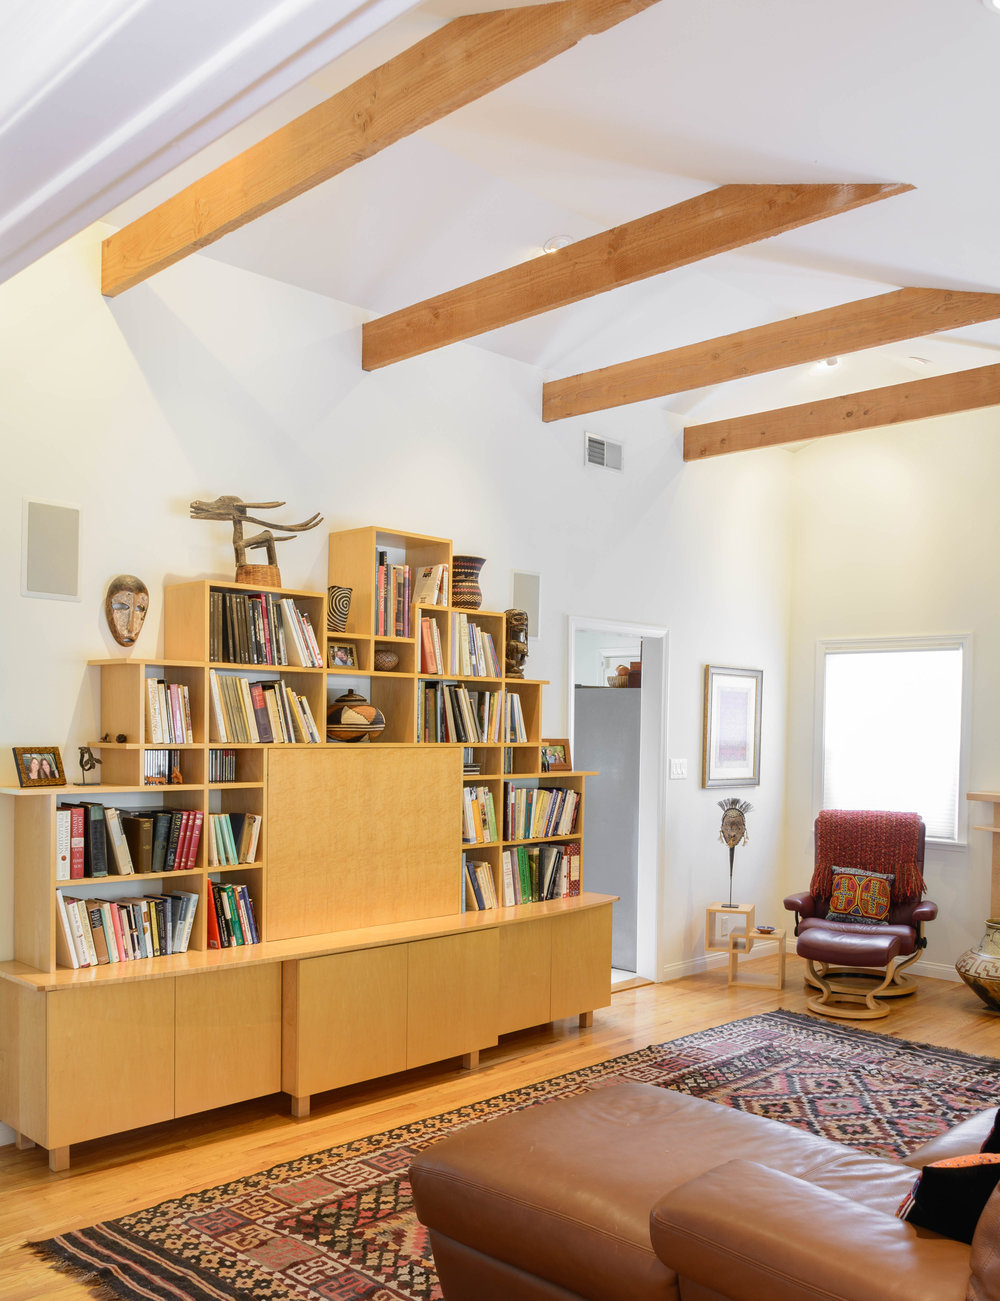 Living room built-in maple entertainment center which also provides for the display of books and art pieces